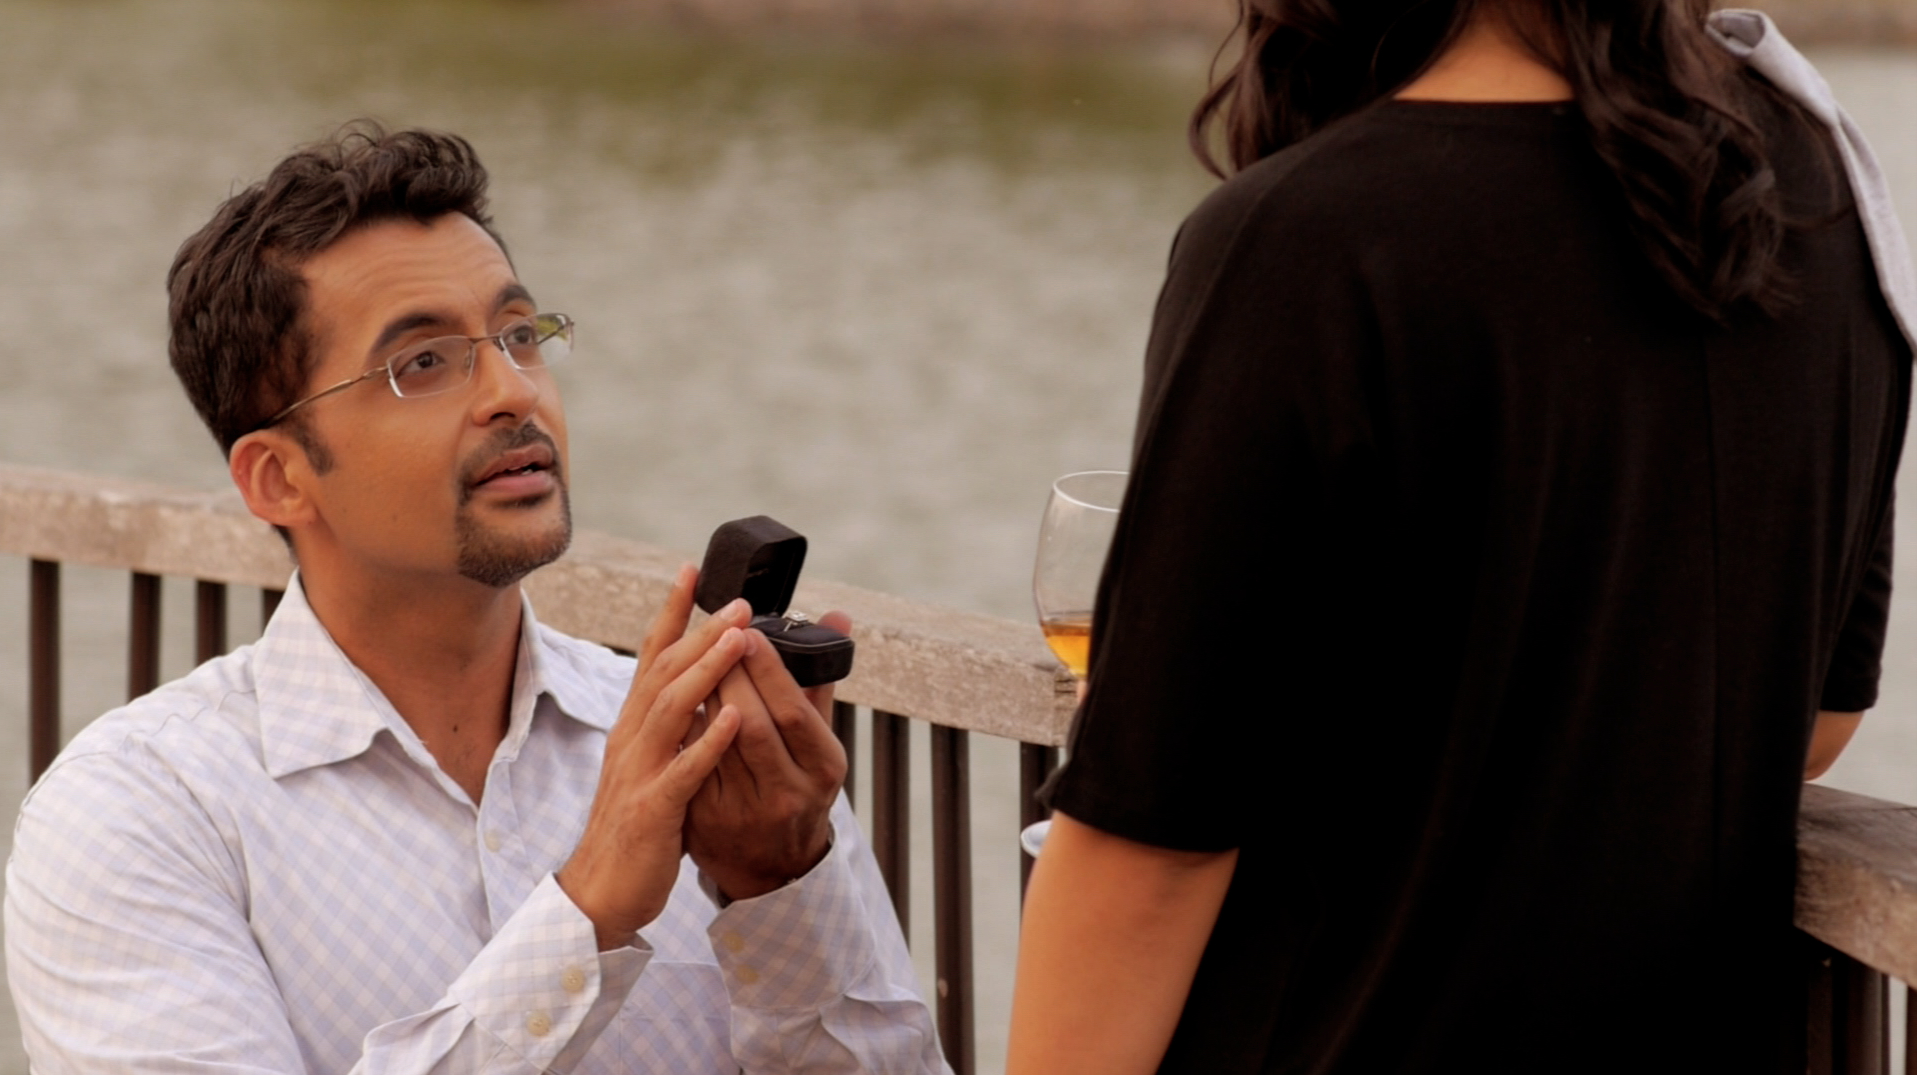 """Pavan Singh plays Charles in """"What Do Men Want?"""" drama series - the perfect guy... except ..."""